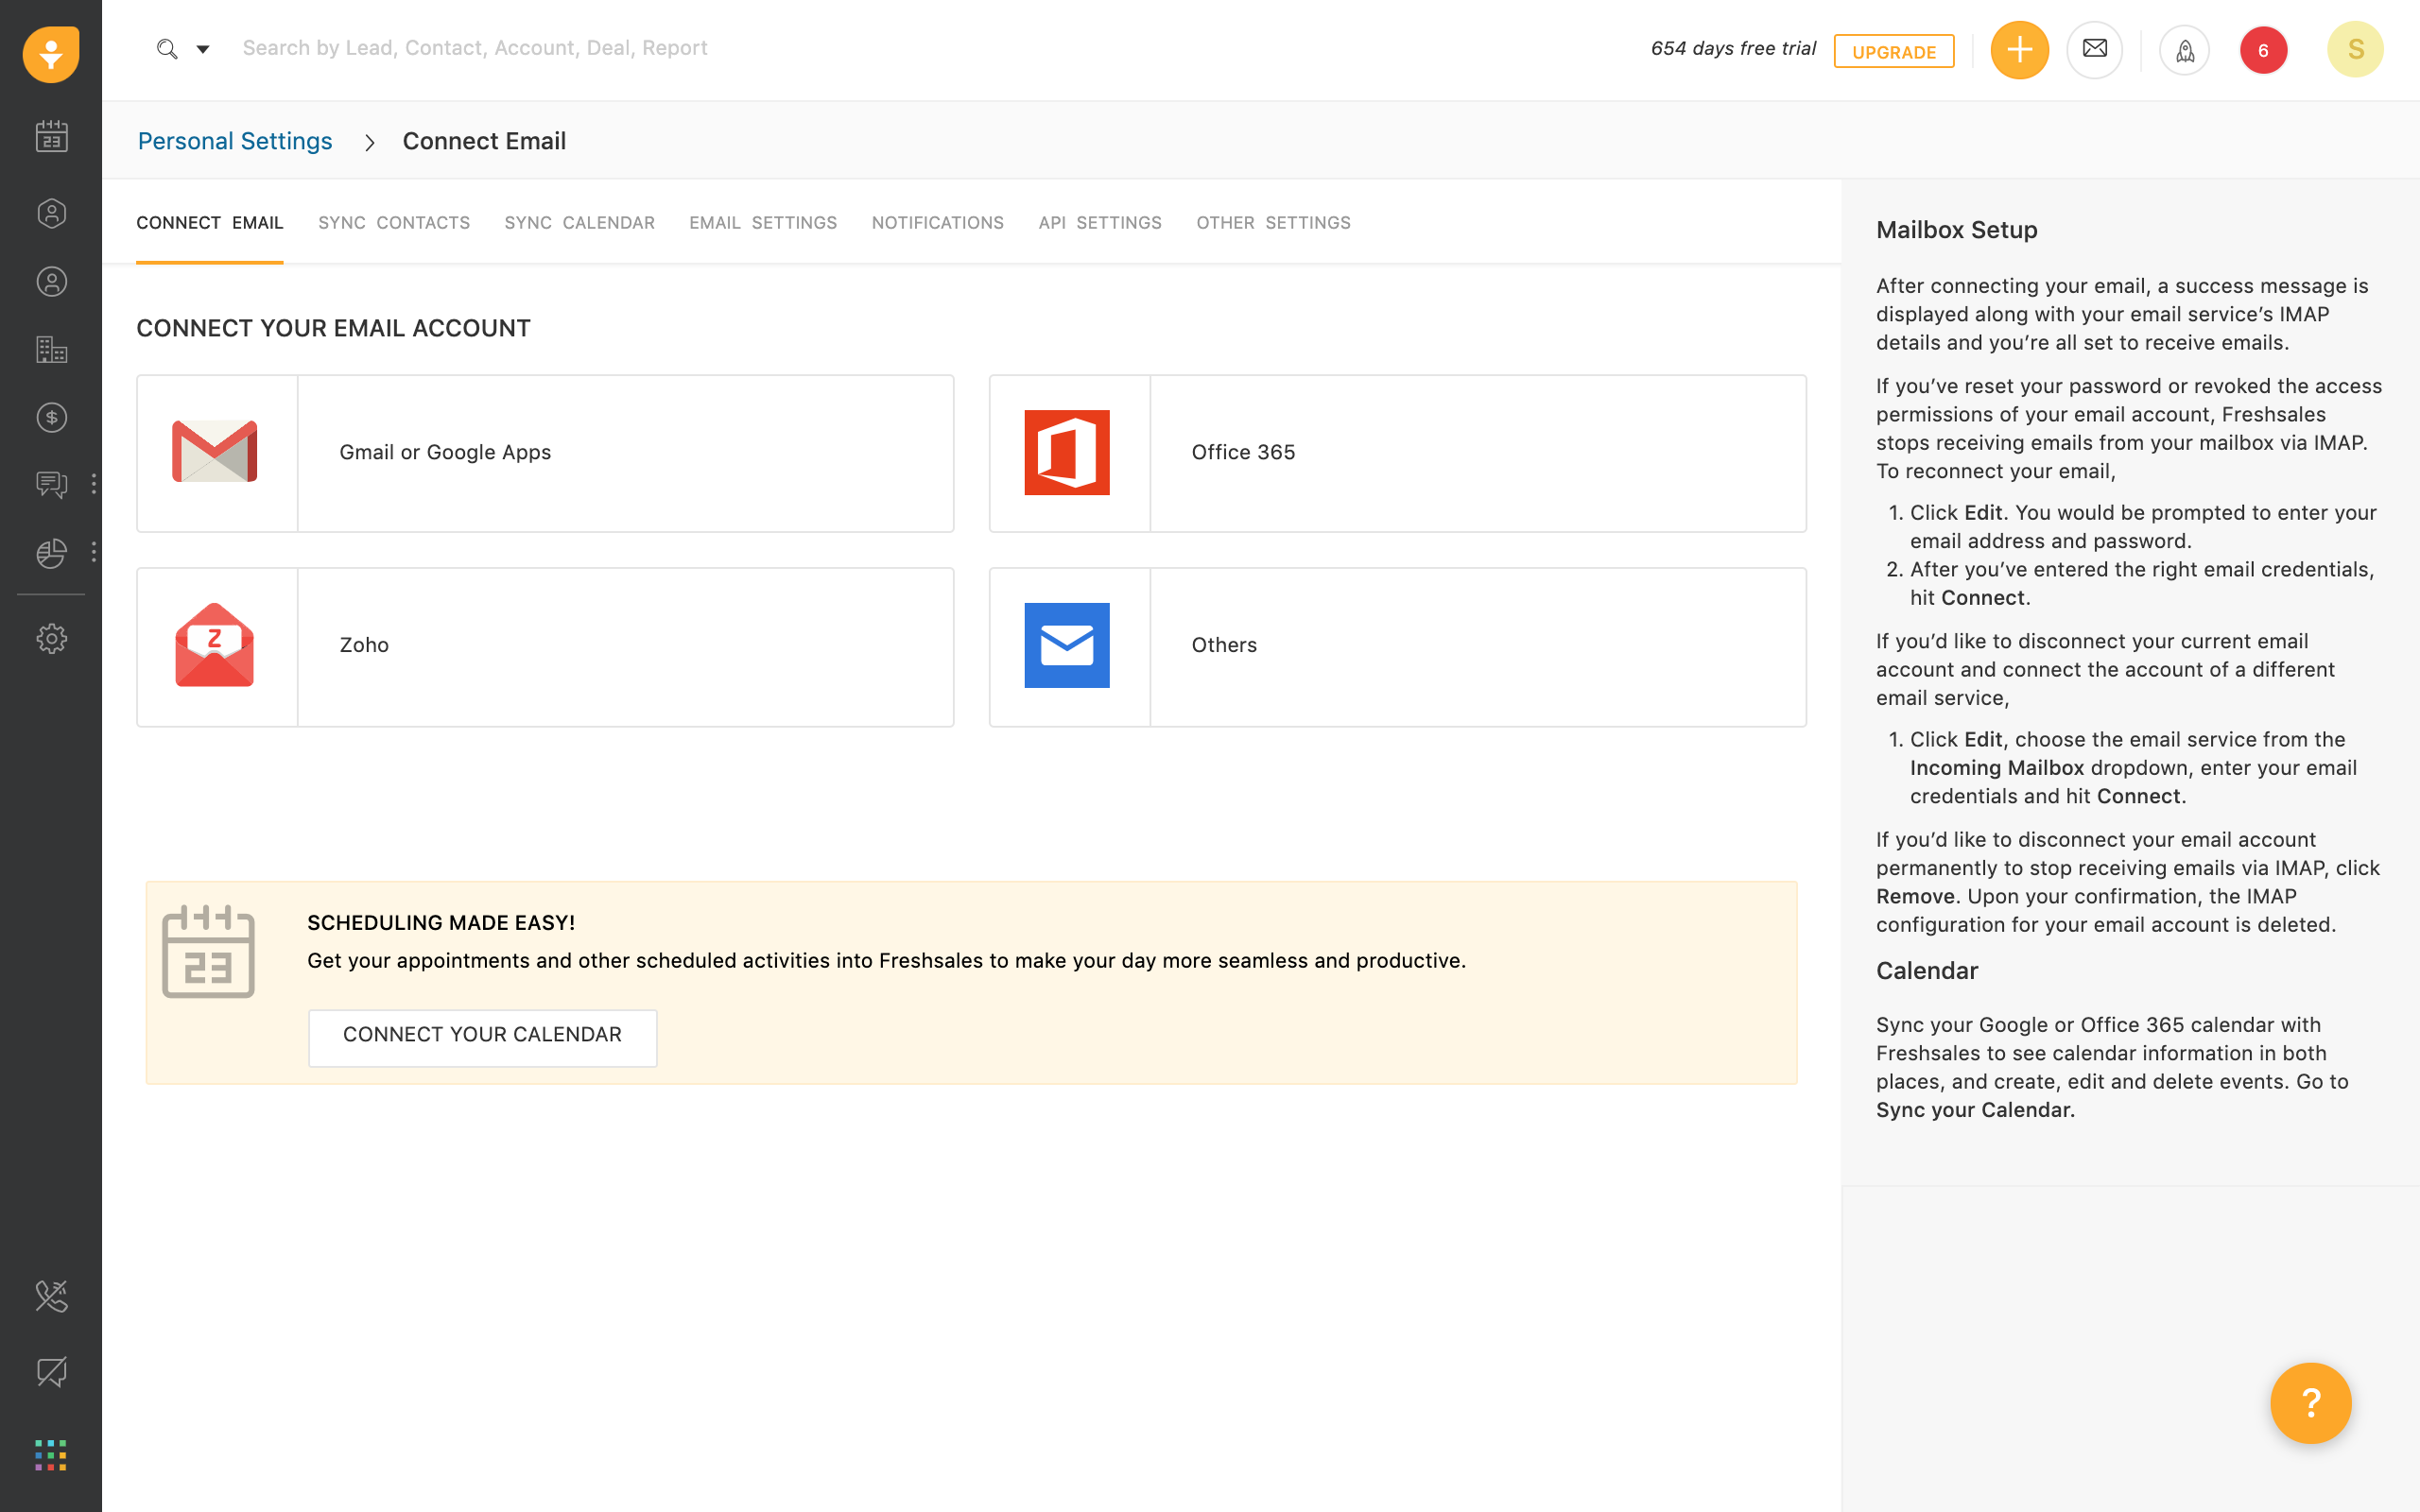 Office 365 integration with Freshsales